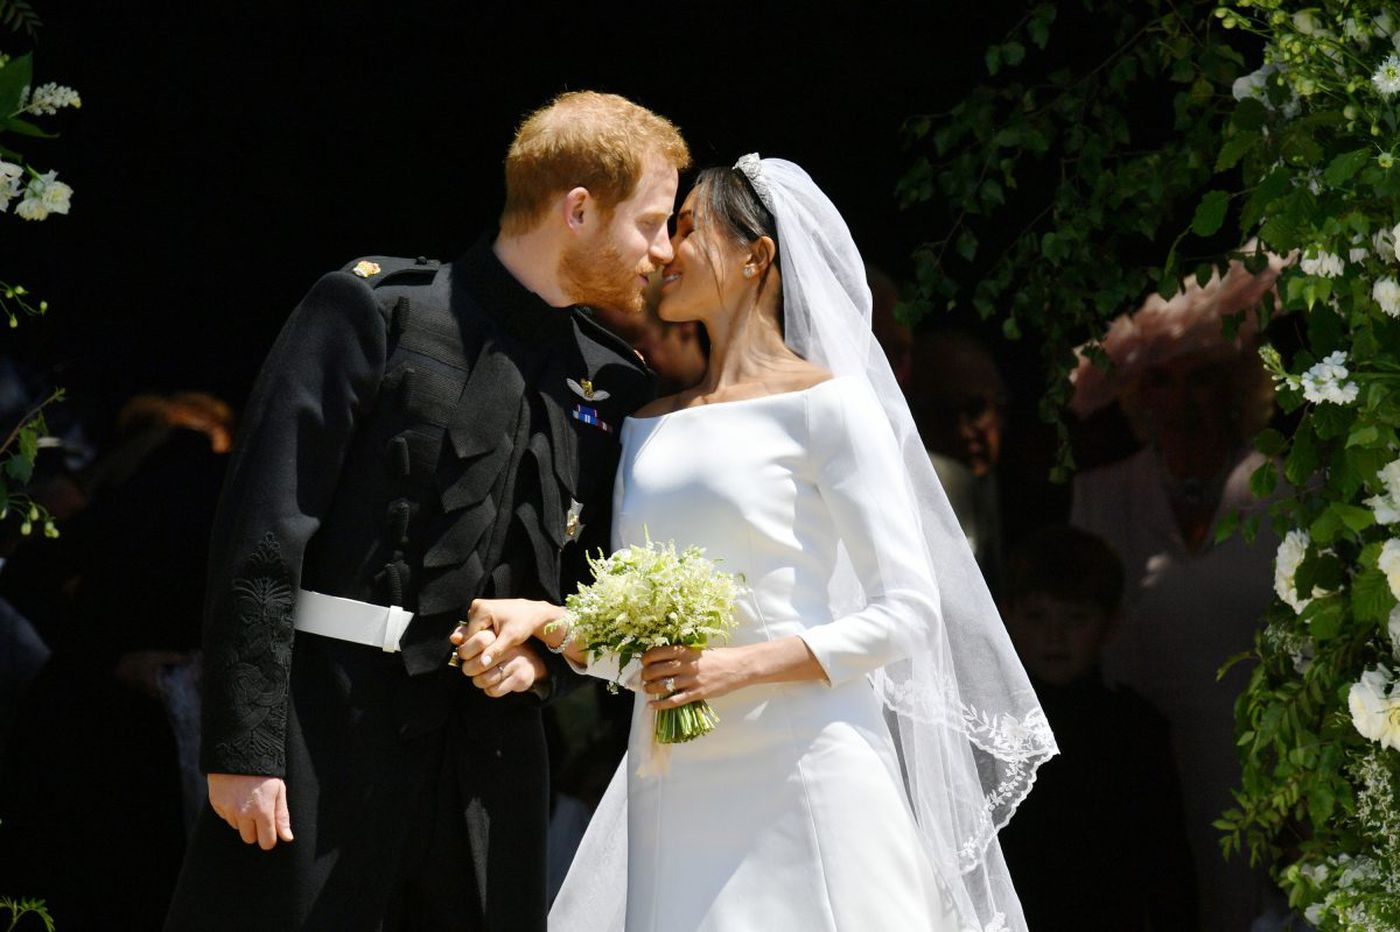 Royal wedding style: Meghan Markle and Prince Harry's nuptials were beautiful and authentic | Elizabeth Wellington